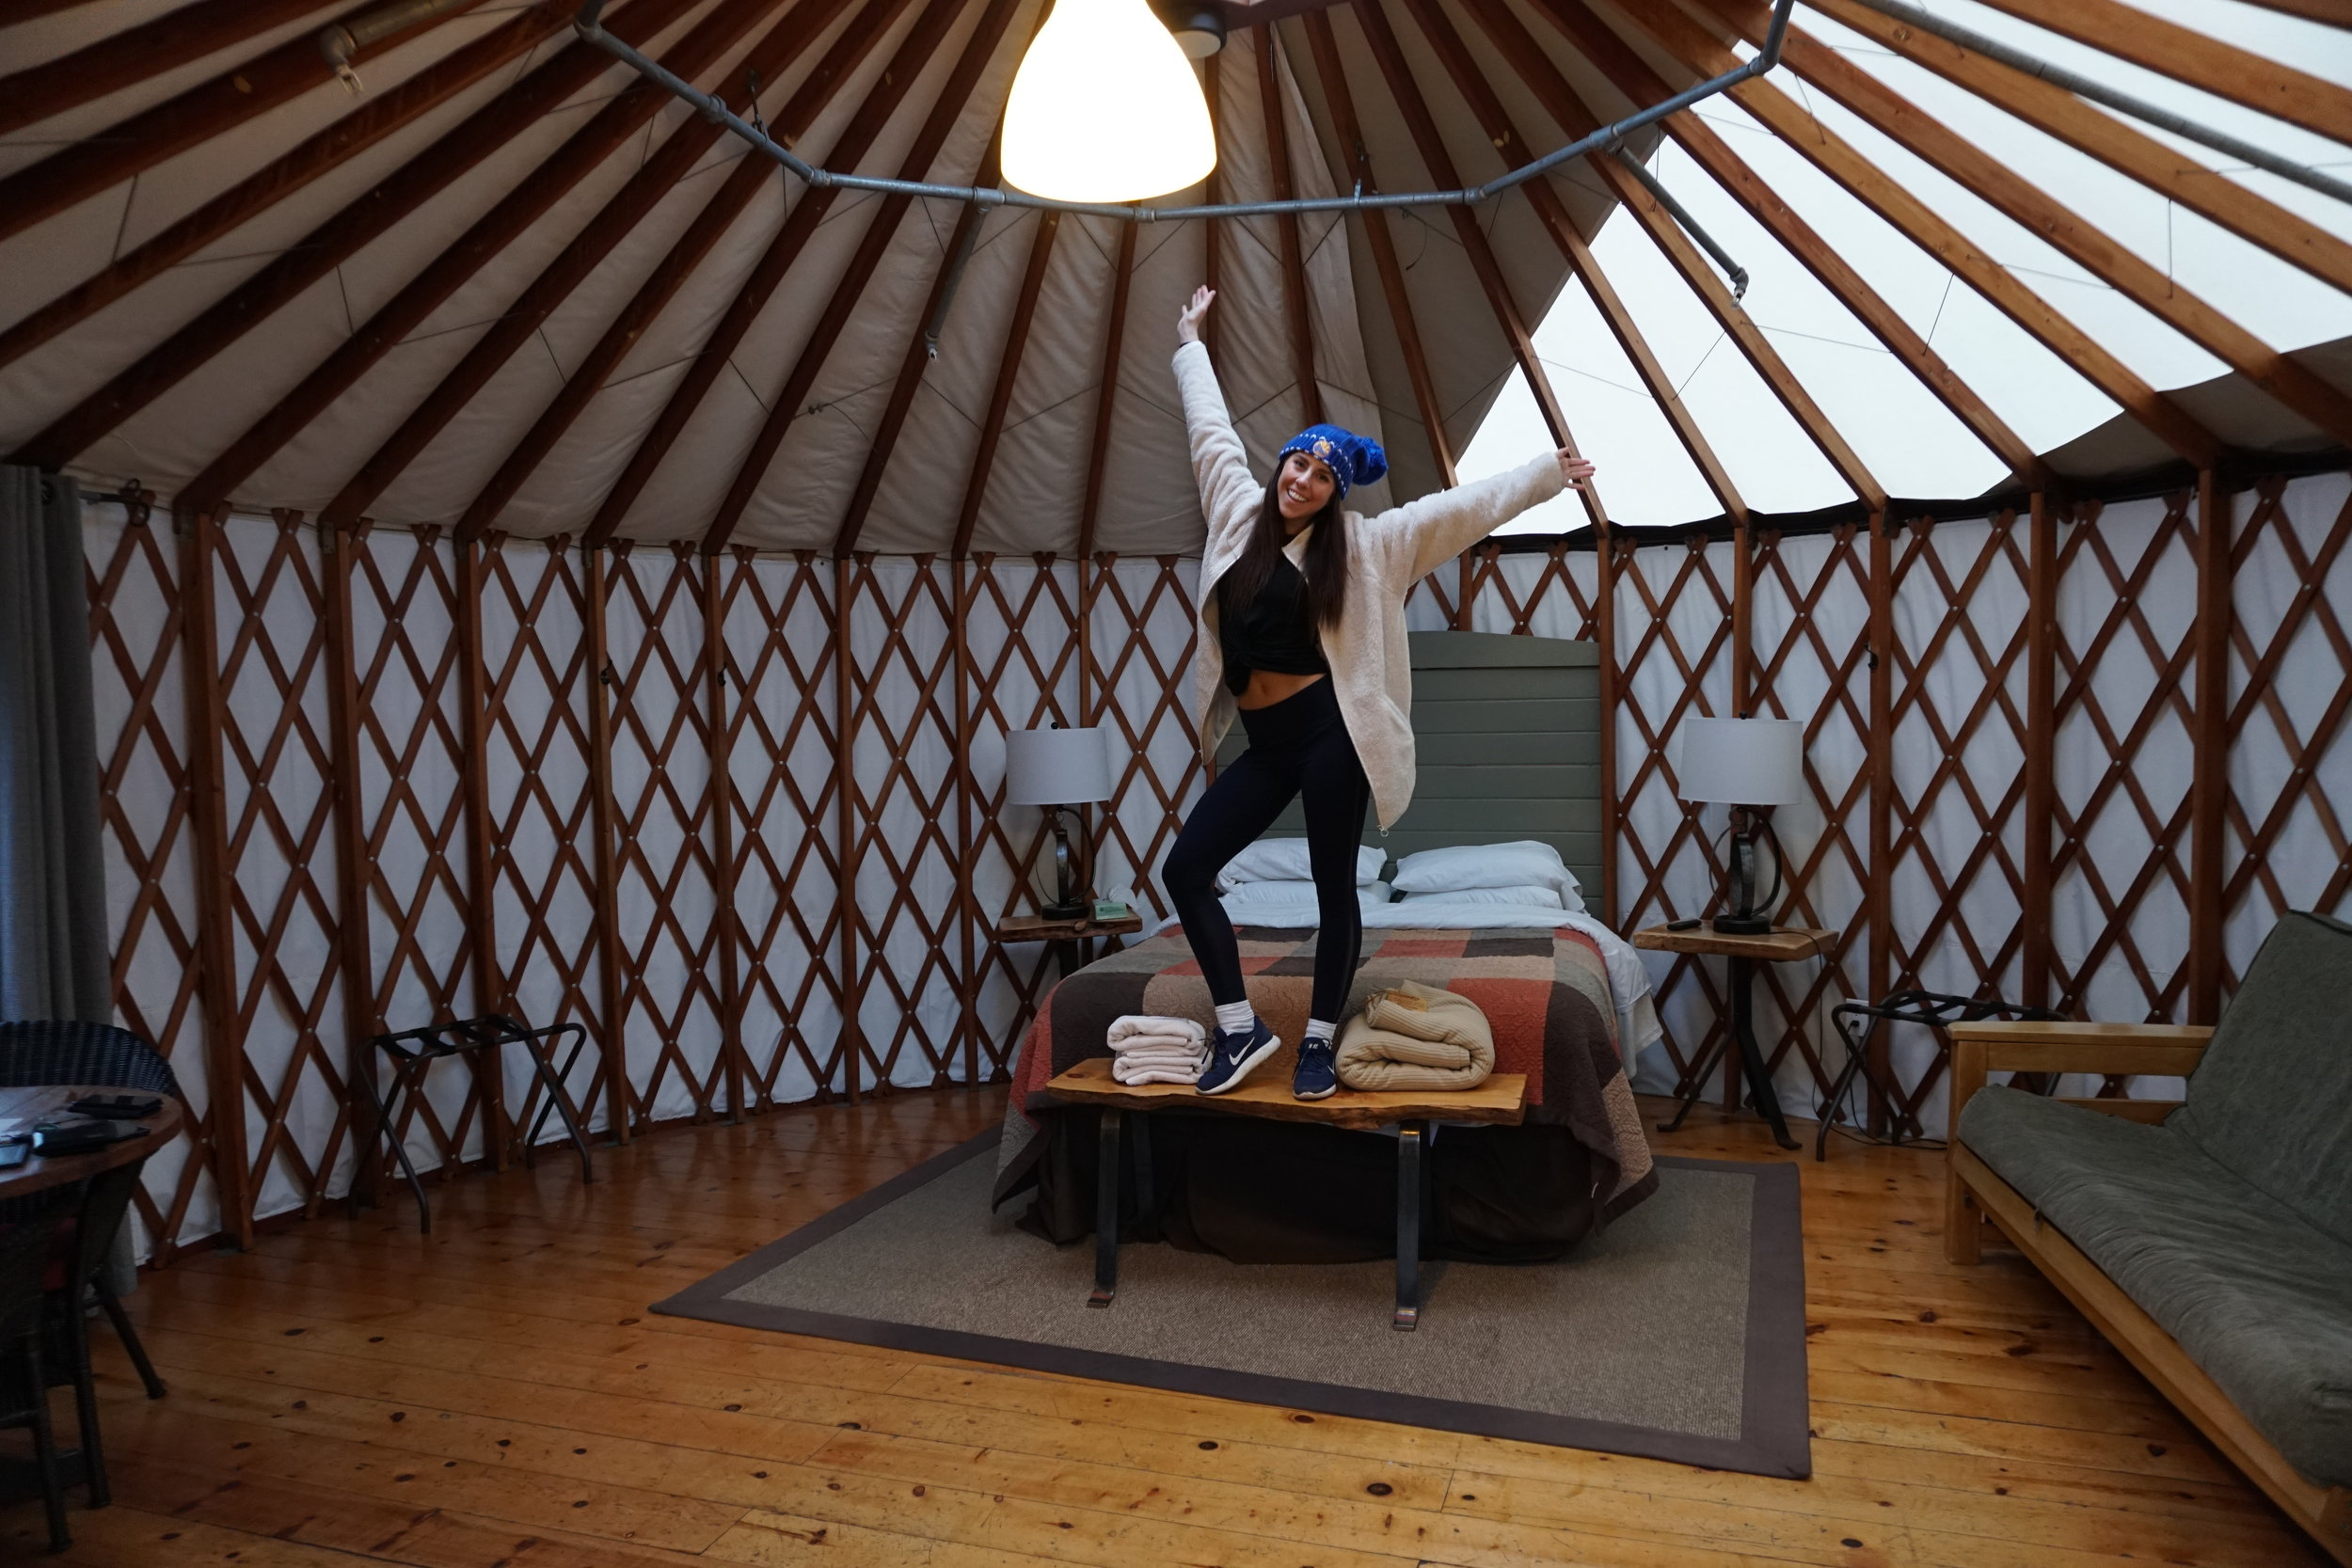 Big Sur Yurts West East Yurt homes video with david's instrumental. big sur yurts west east